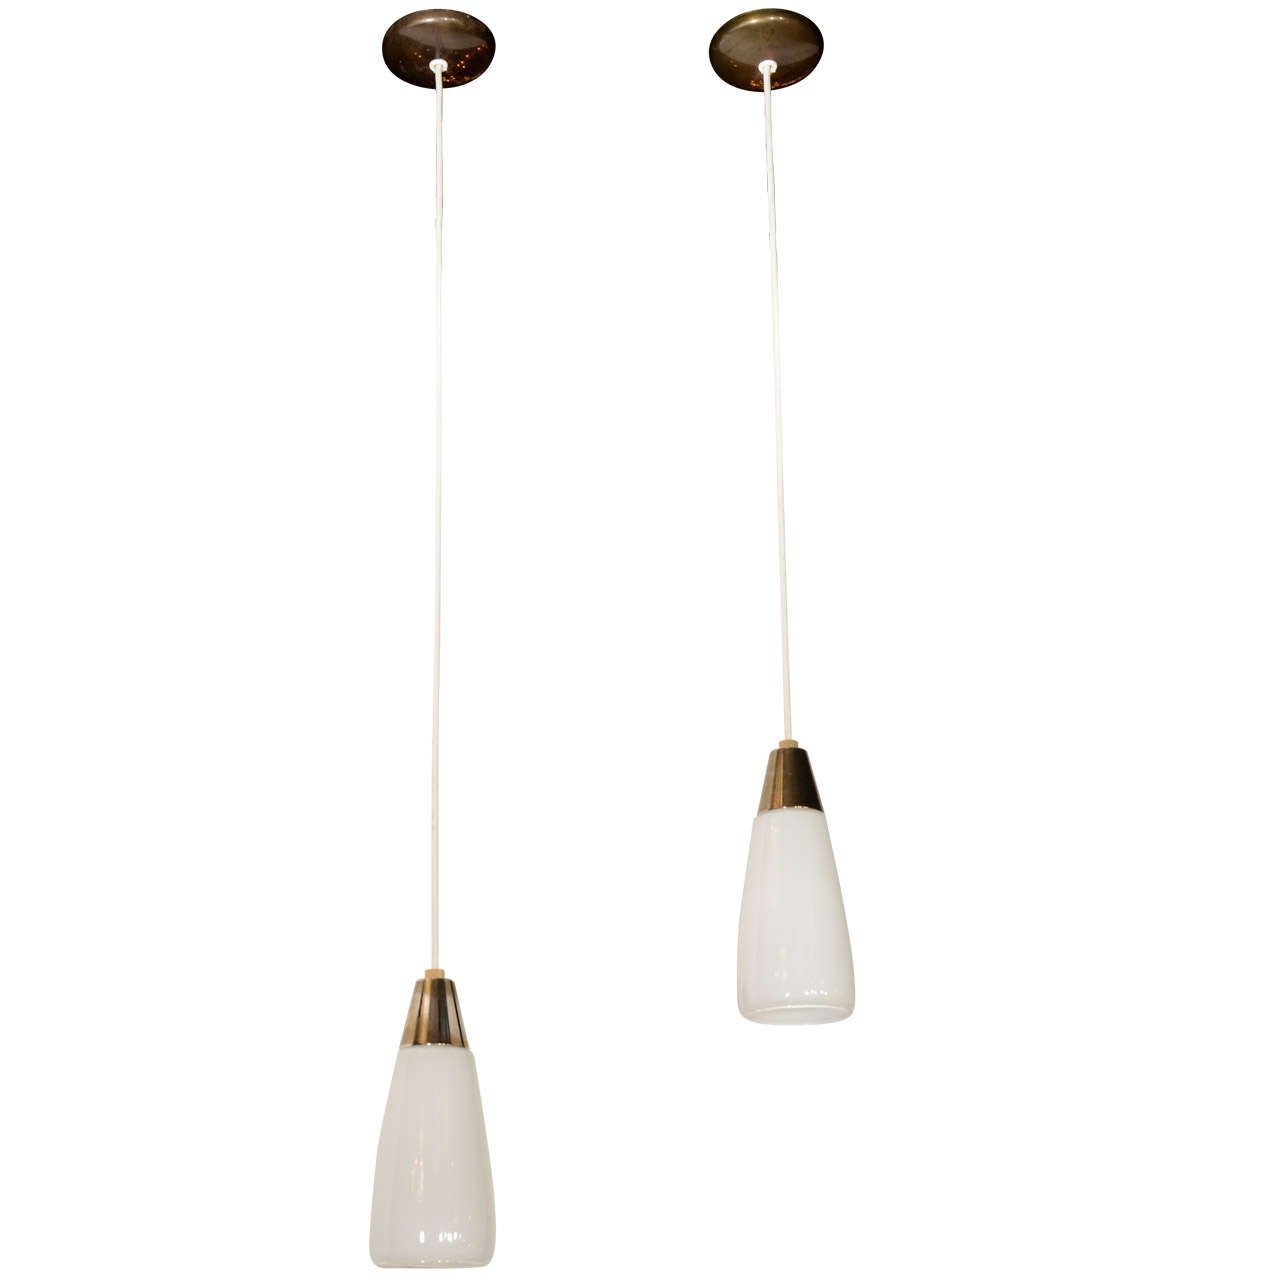 Pair of Danish Modernist Opaline Glass Pendant Lights